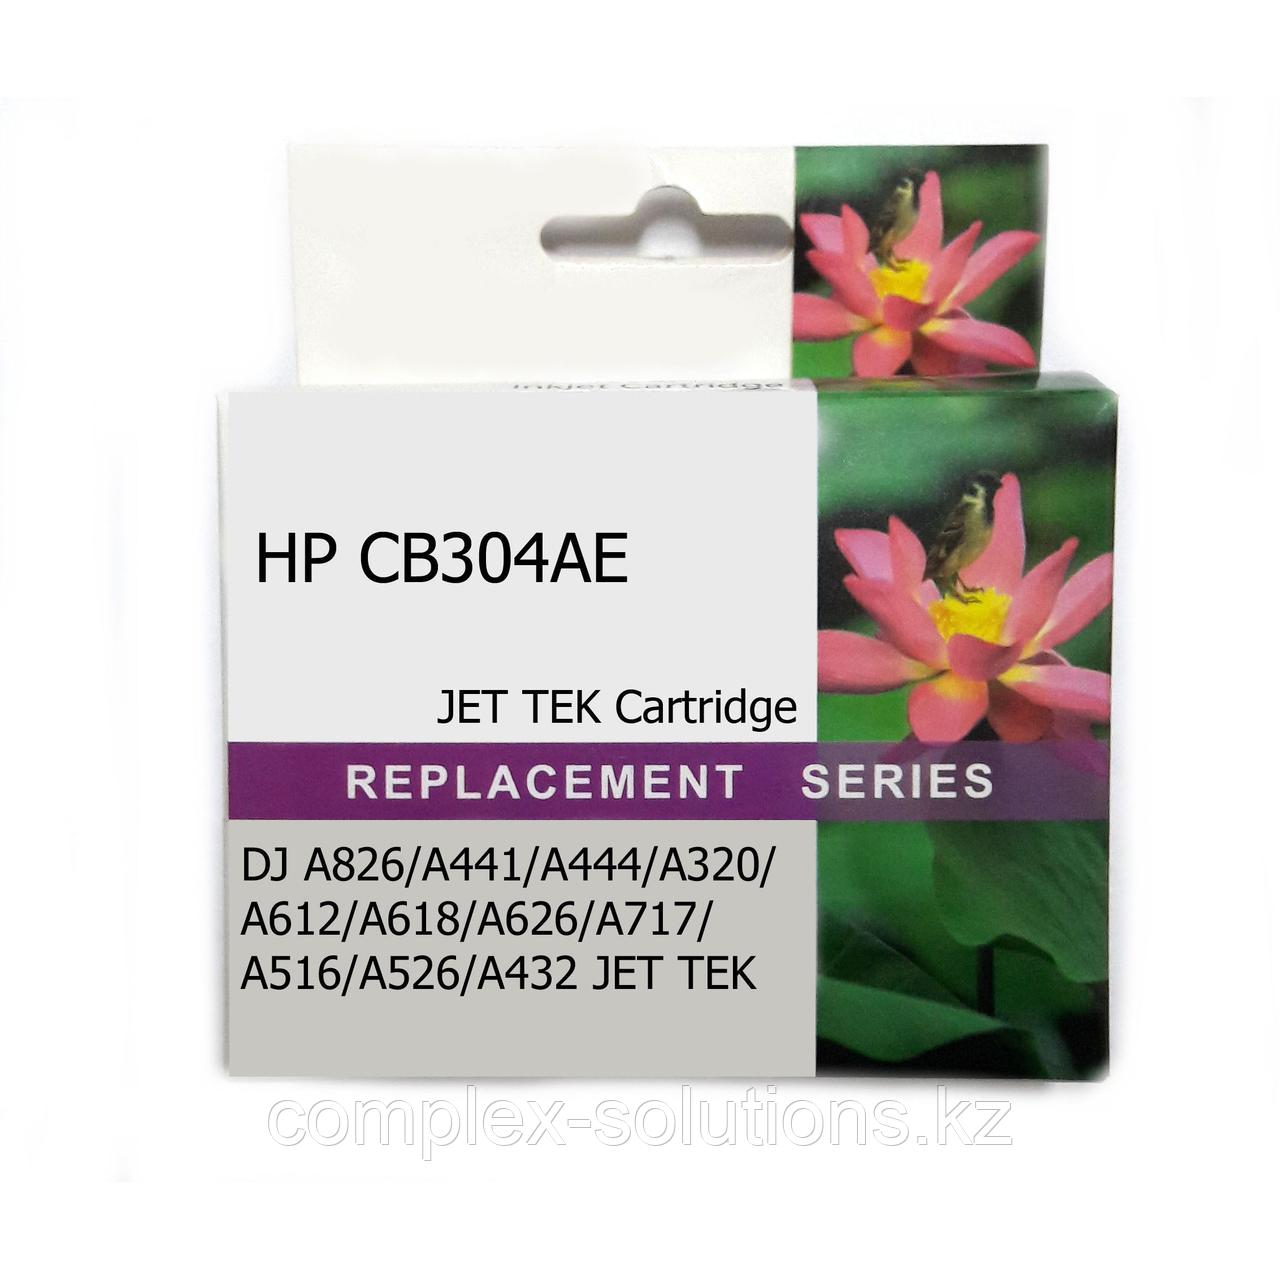 Картридж HP CB304AE Tri-color Inkjet Print Cartridge with Vivera Inks №110, 5ml, for DJ A826 | A441 | A444 | A320 | A612 | A618 | A626 | A717 | А516 |